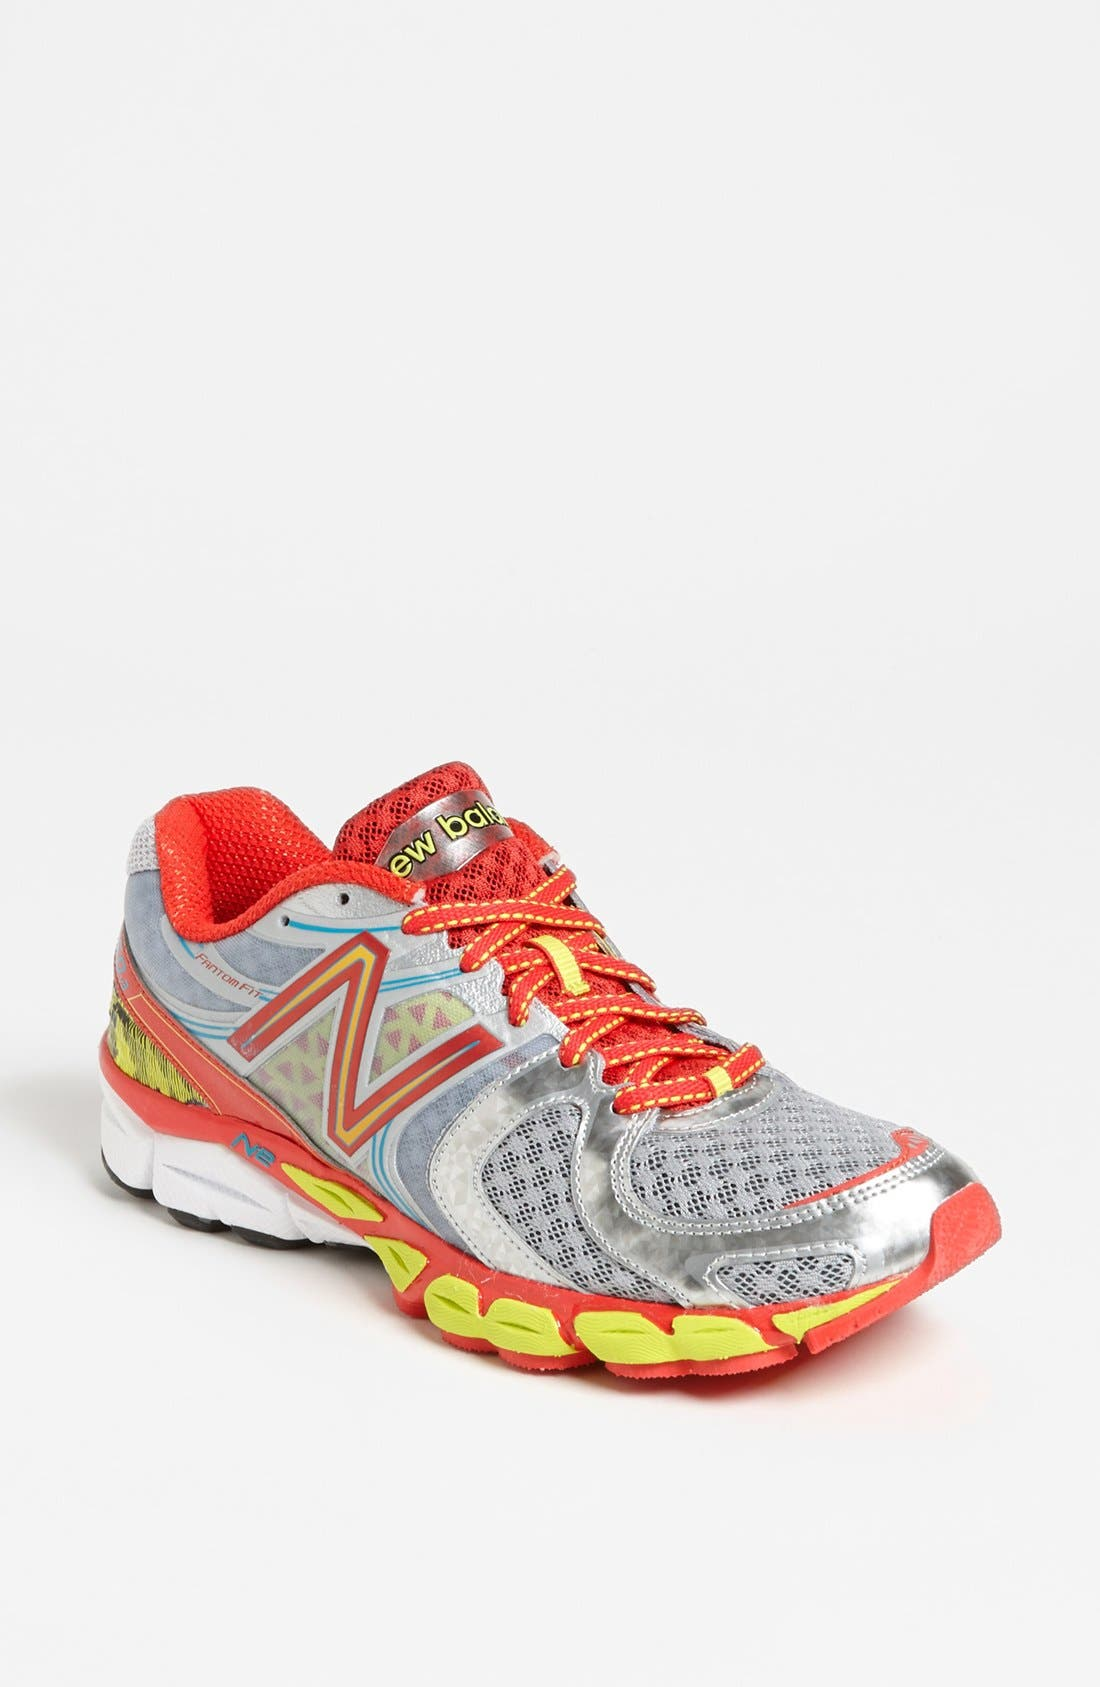 Alternate Image 1 Selected - New Balance '1260' Running Shoe (Women)